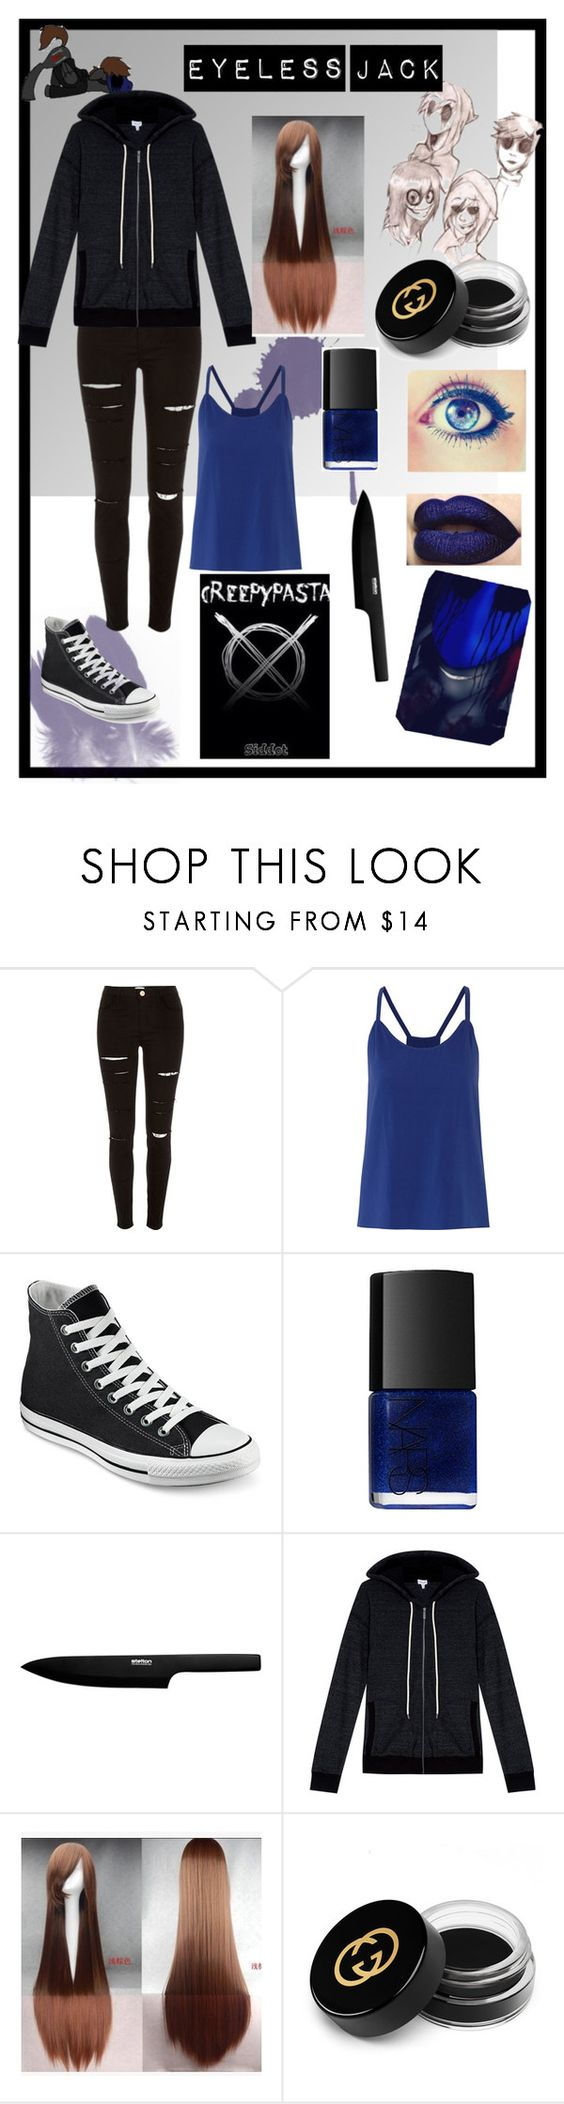 """look eyeless jack"" by celiane-basille on Polyvore featuring mode, River Island, Alice + Olivia, Converse, NARS Cosmetics, Stelton, Splendid et Gucci"